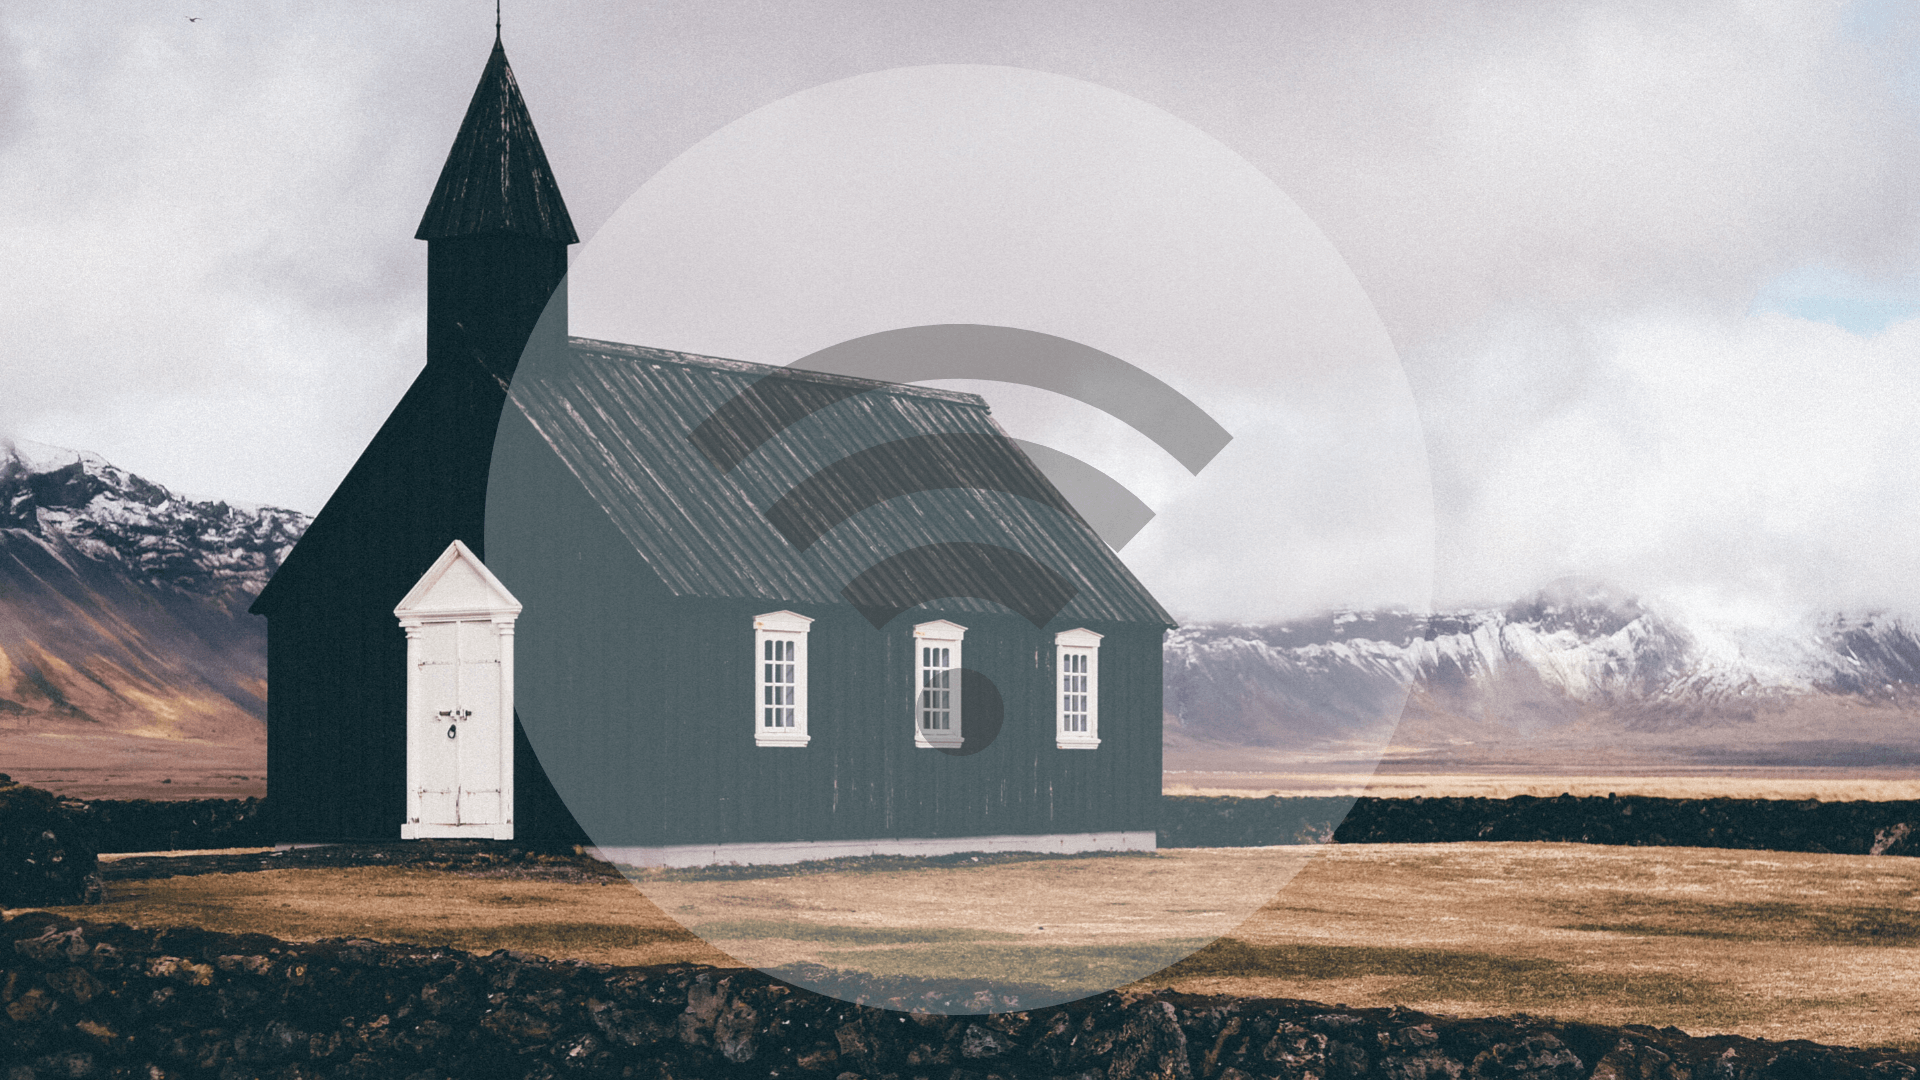 Anthony Vander Laan - has the internet made attending church obsolete